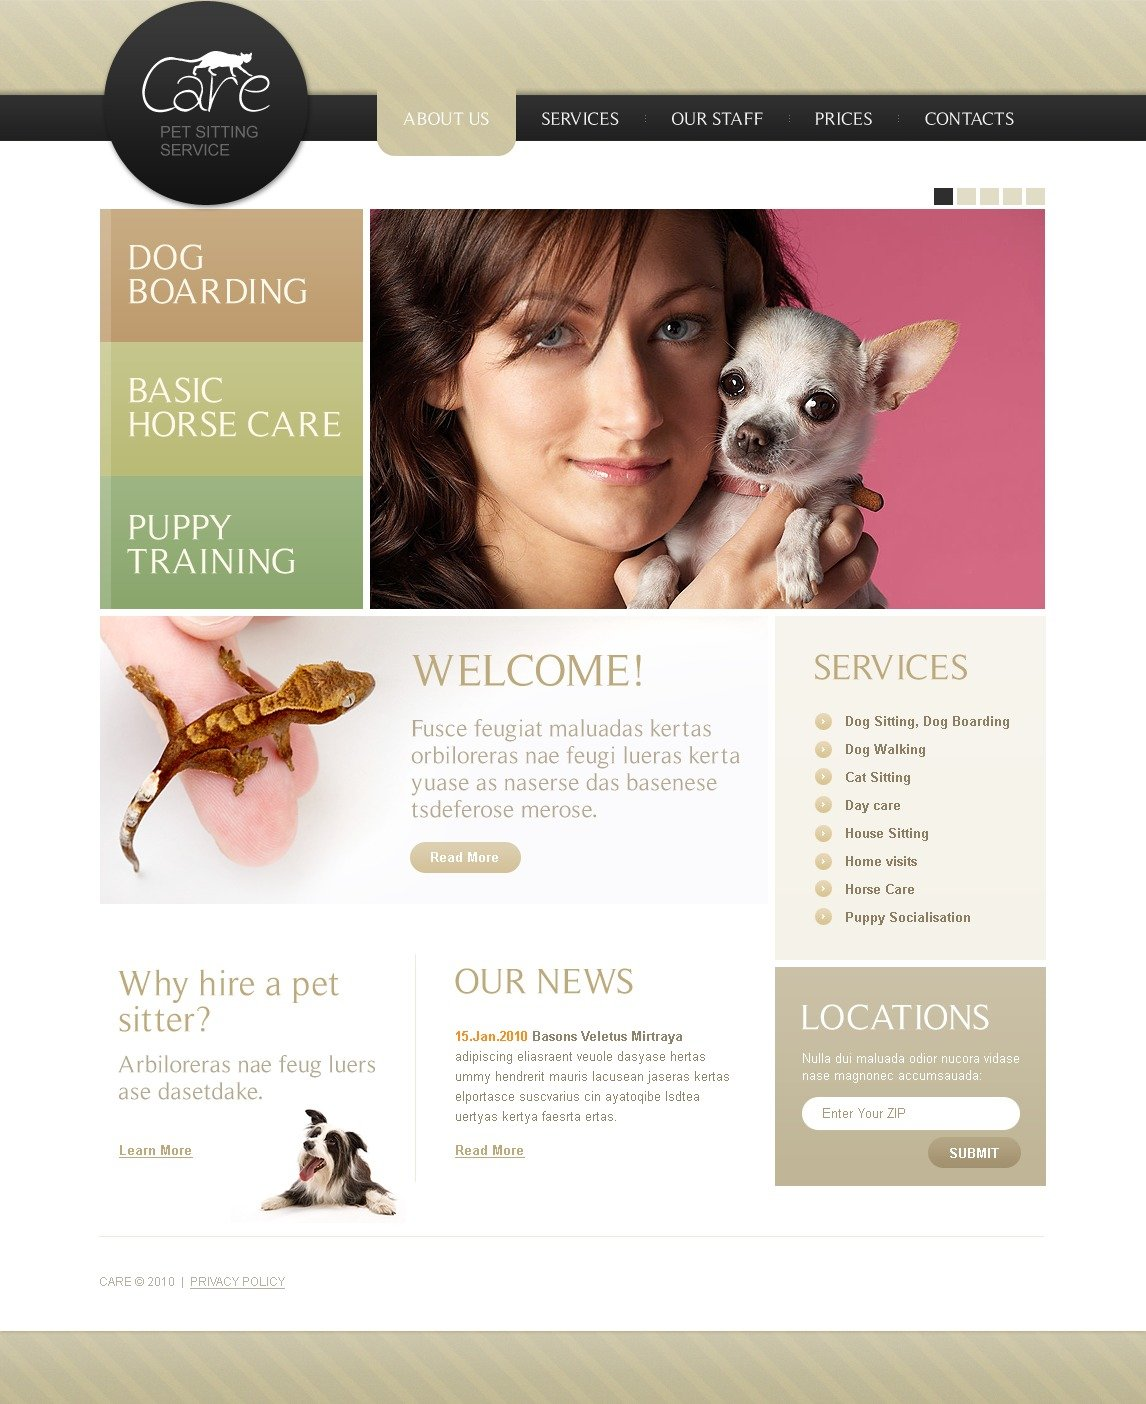 The Care Pet PSD Design 54184, one of the best PSD templates of its kind (animals & pets, most popular, wide, jquery), also known as care pet PSD template, sitting PSD template, feeding PSD template, vacation PSD template, services PSD template, dog PSD template, cat PSD template, walking PSD template, house PSD template, visit PSD template, boarding PSD template, socialization and related with care pet, sitting, feeding, vacation, services, dog, cat, walking, house, visit, boarding, socialization, etc.